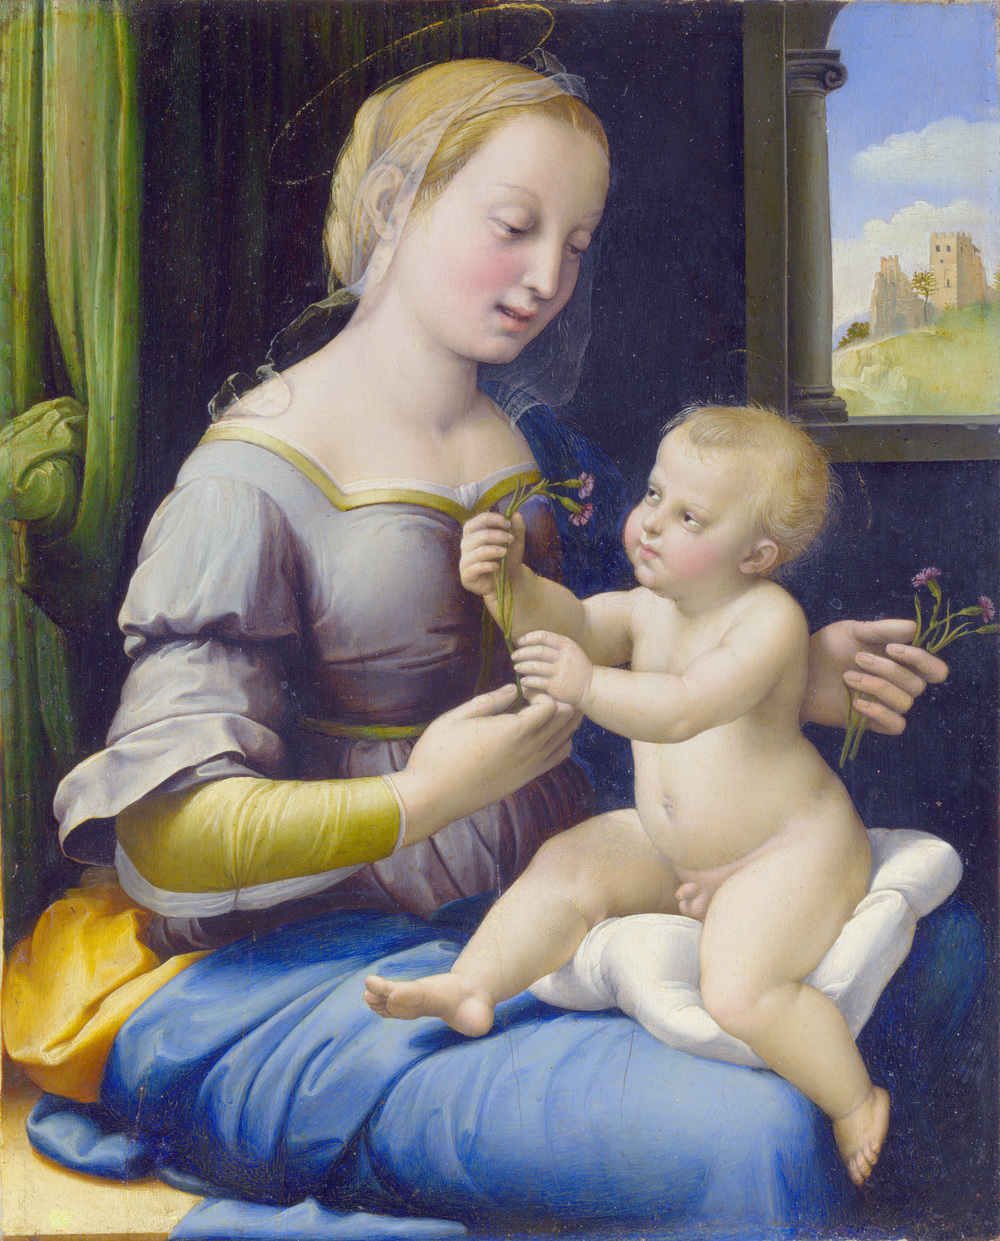 Artist Raphael Year c. 1506–1507 Type oil on yew Dimensions 27.9 cm × 22.4 cm (11.0 in × 8.8 in) Location National Gallery, London